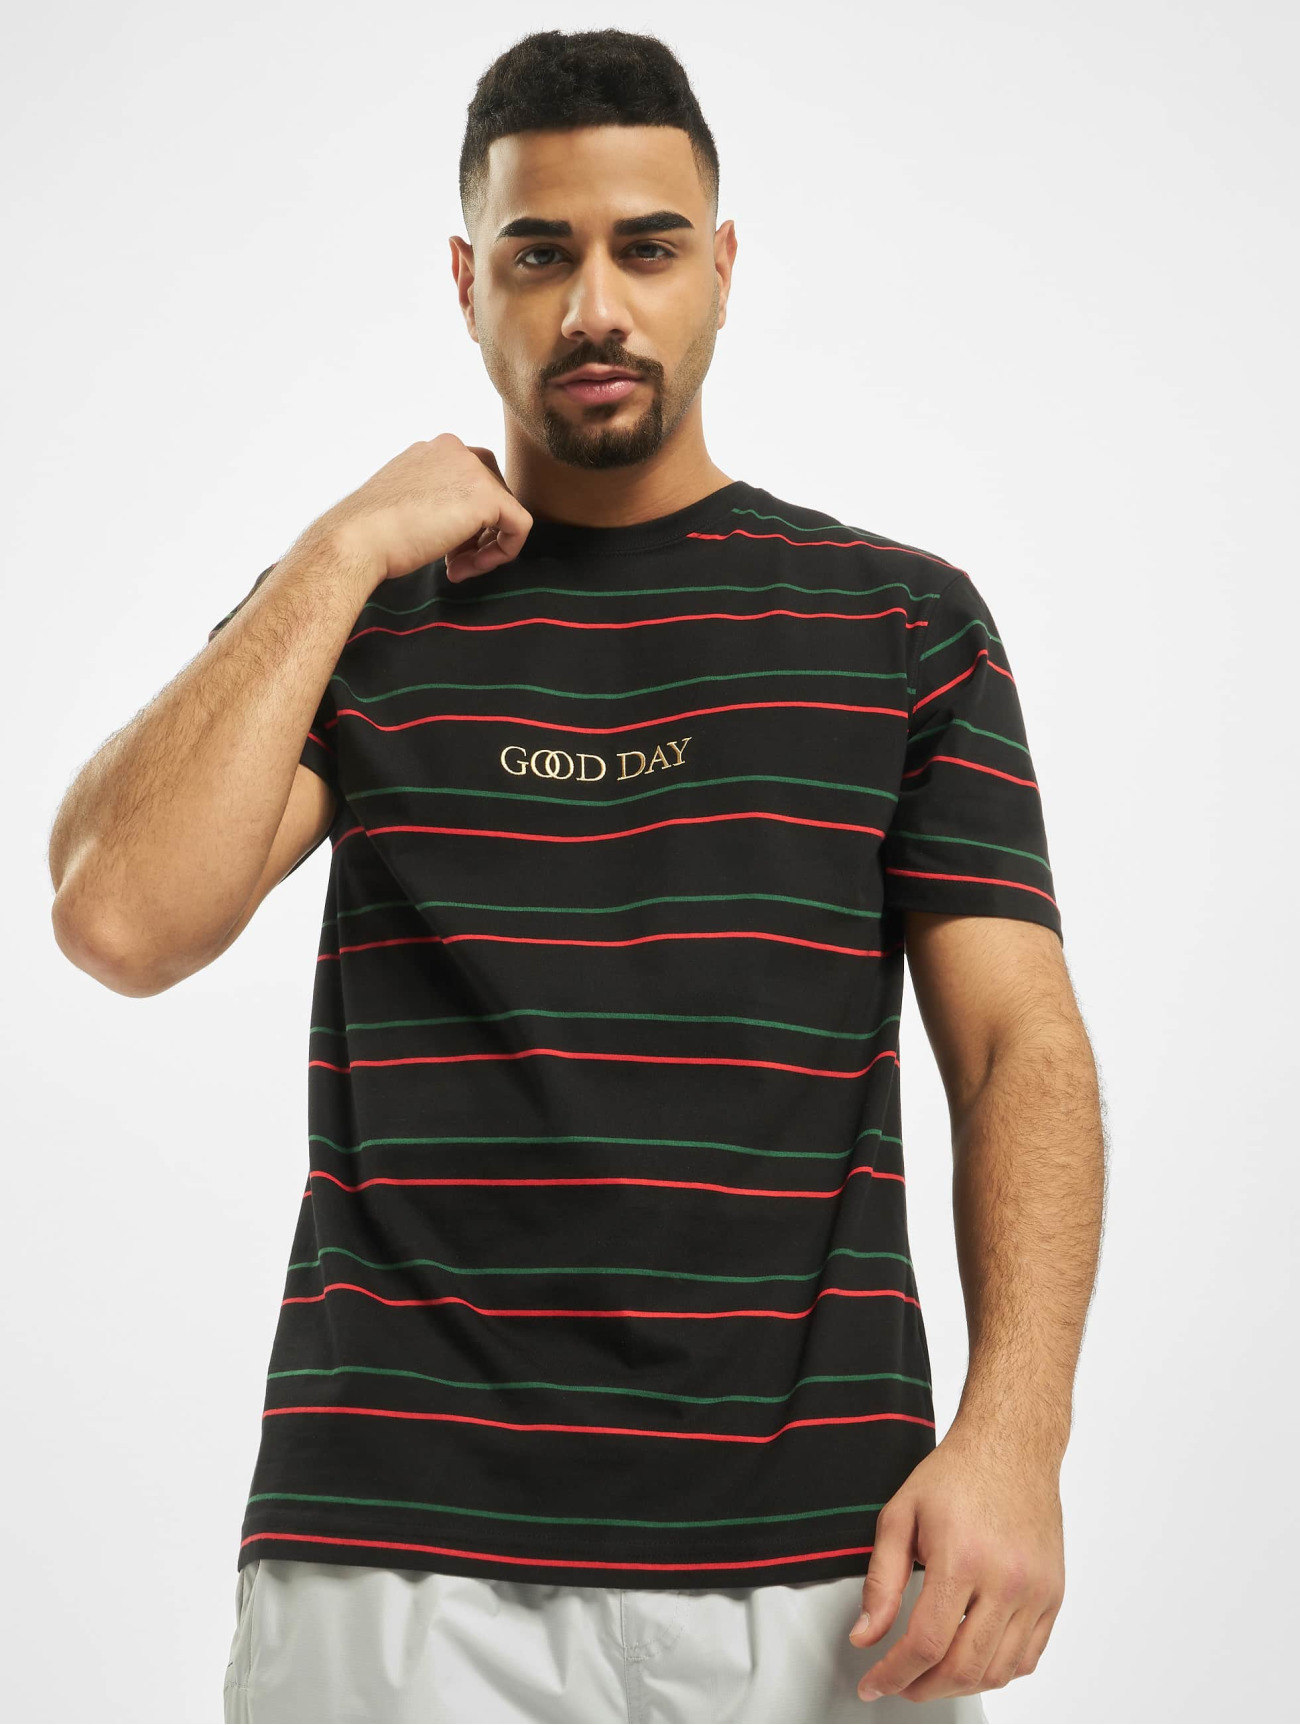 Cayler & Sons | WL Good Day Stripe  noir Homme T-Shirt  742855| Homme Hauts